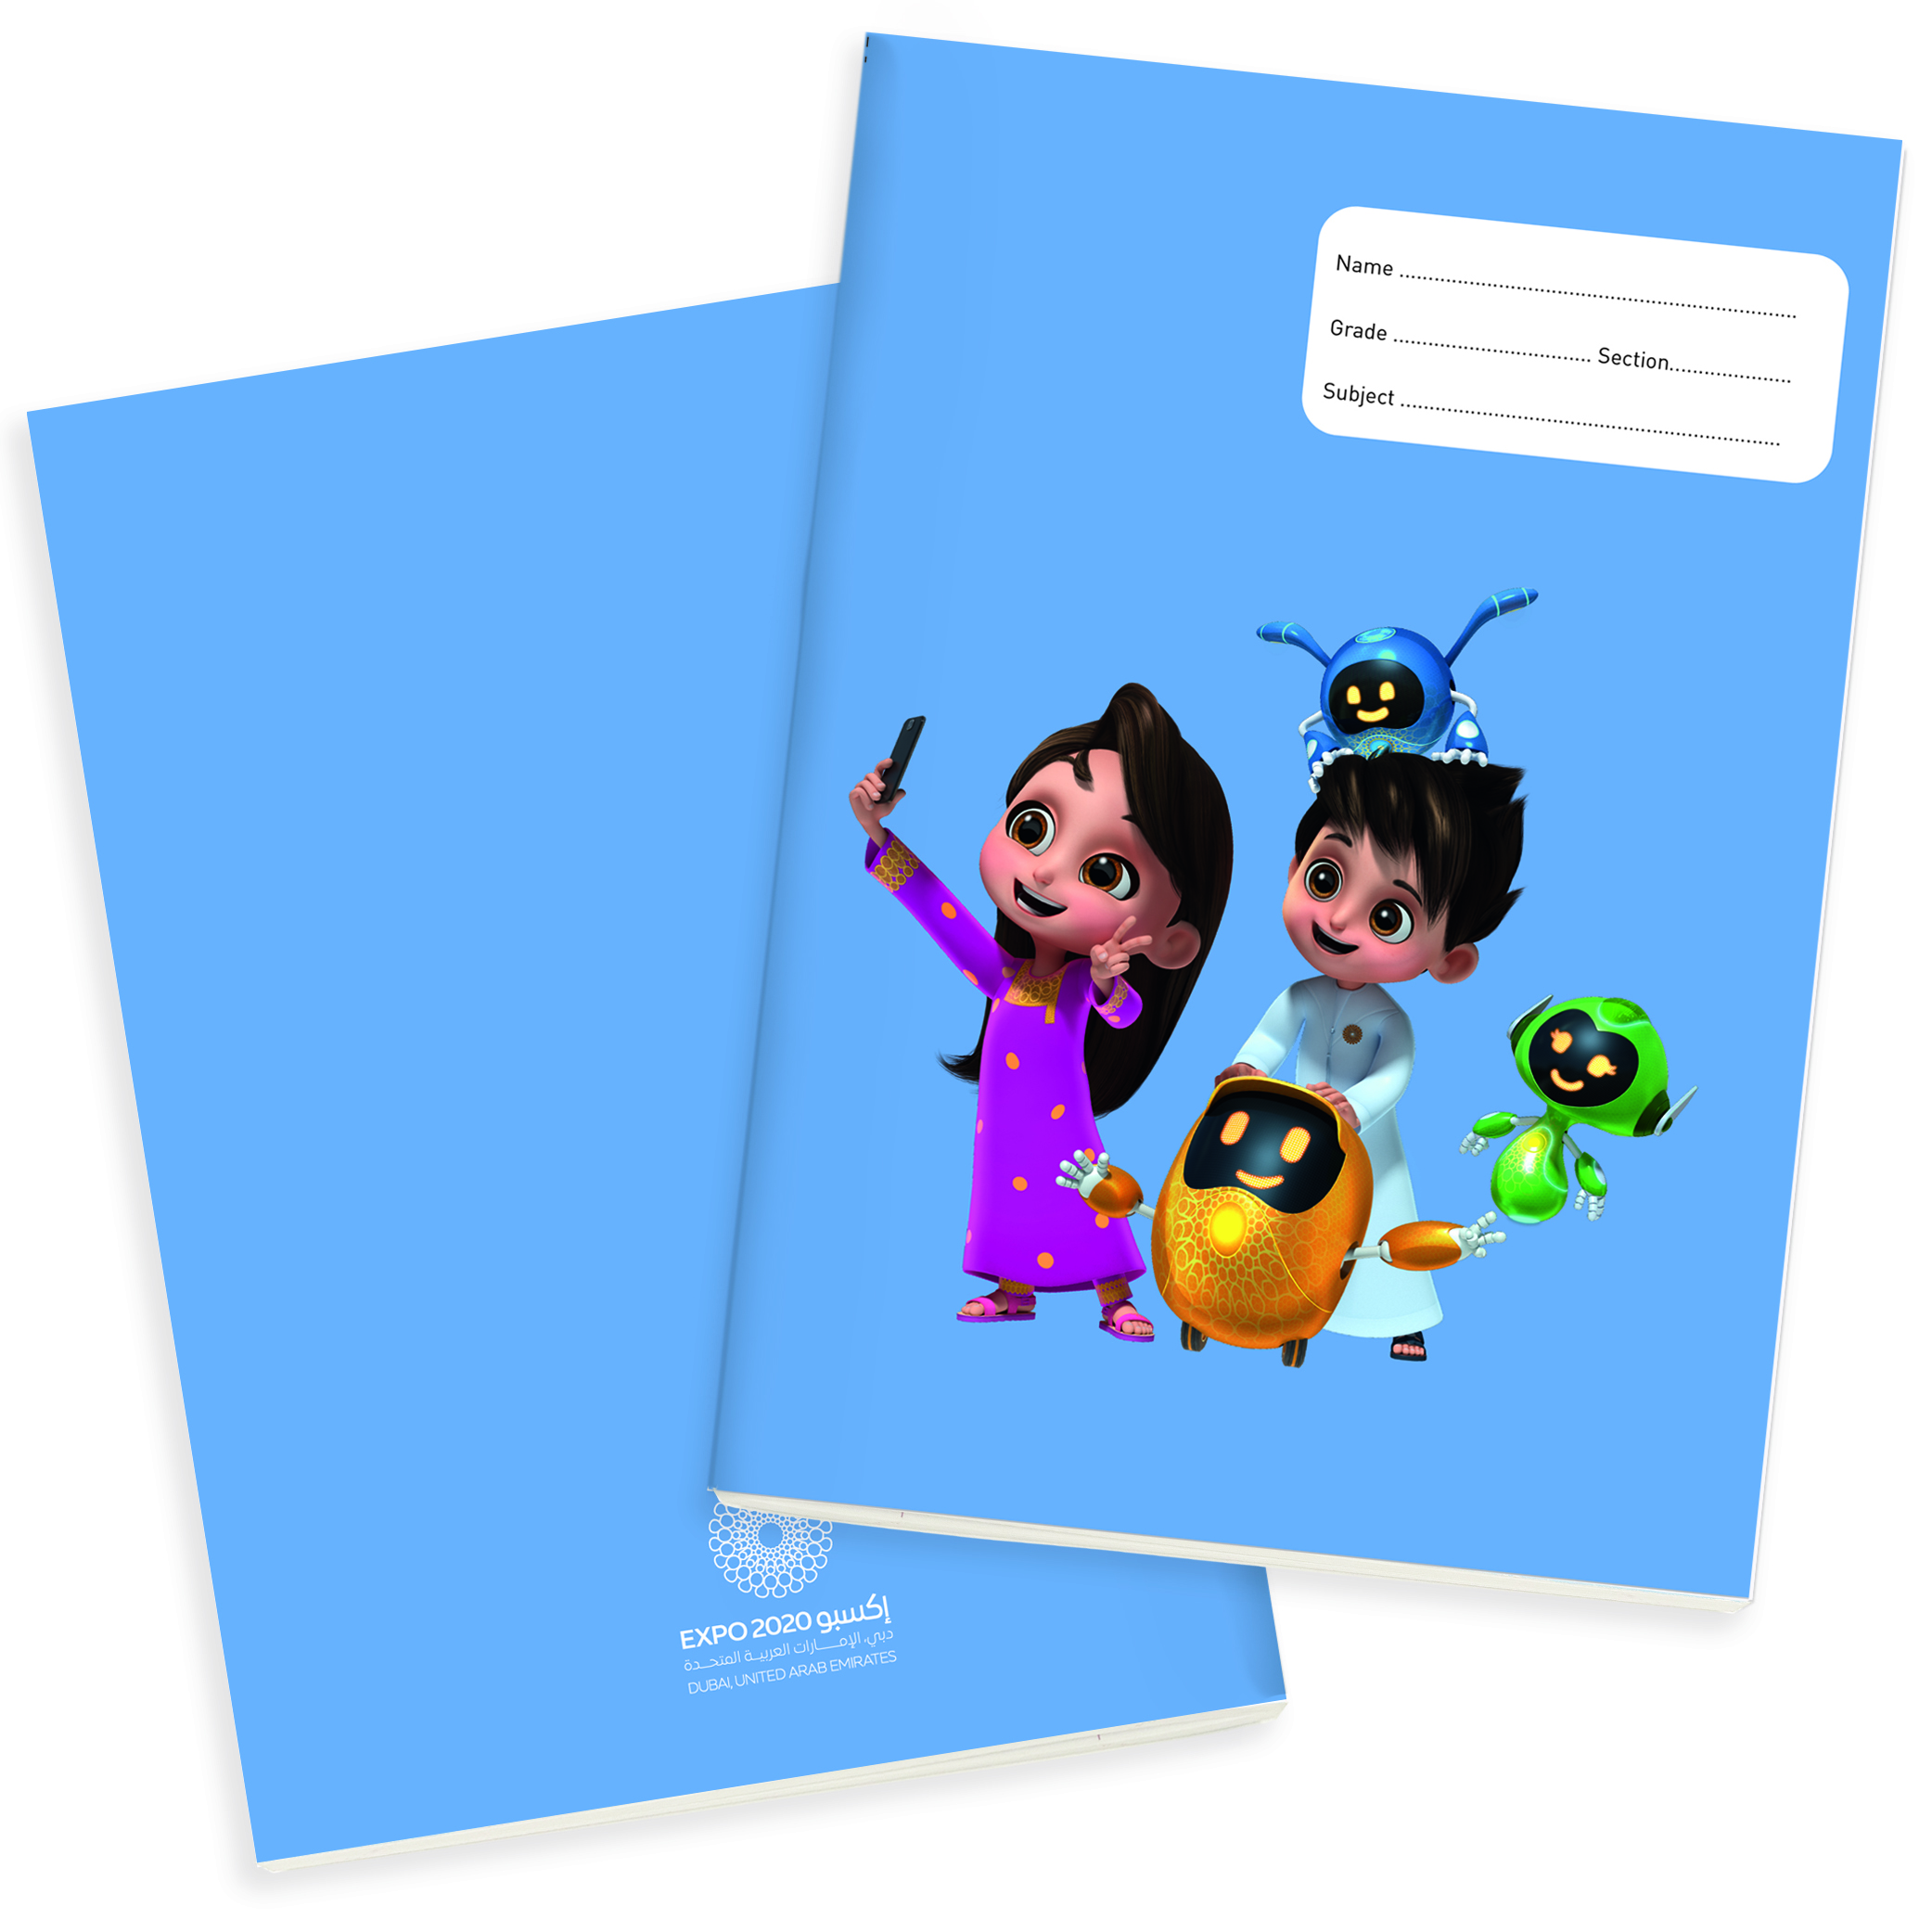 Expo 2020 Dubai Mascots Family B5 Exercise Books Pack of 4 - 64 Pages